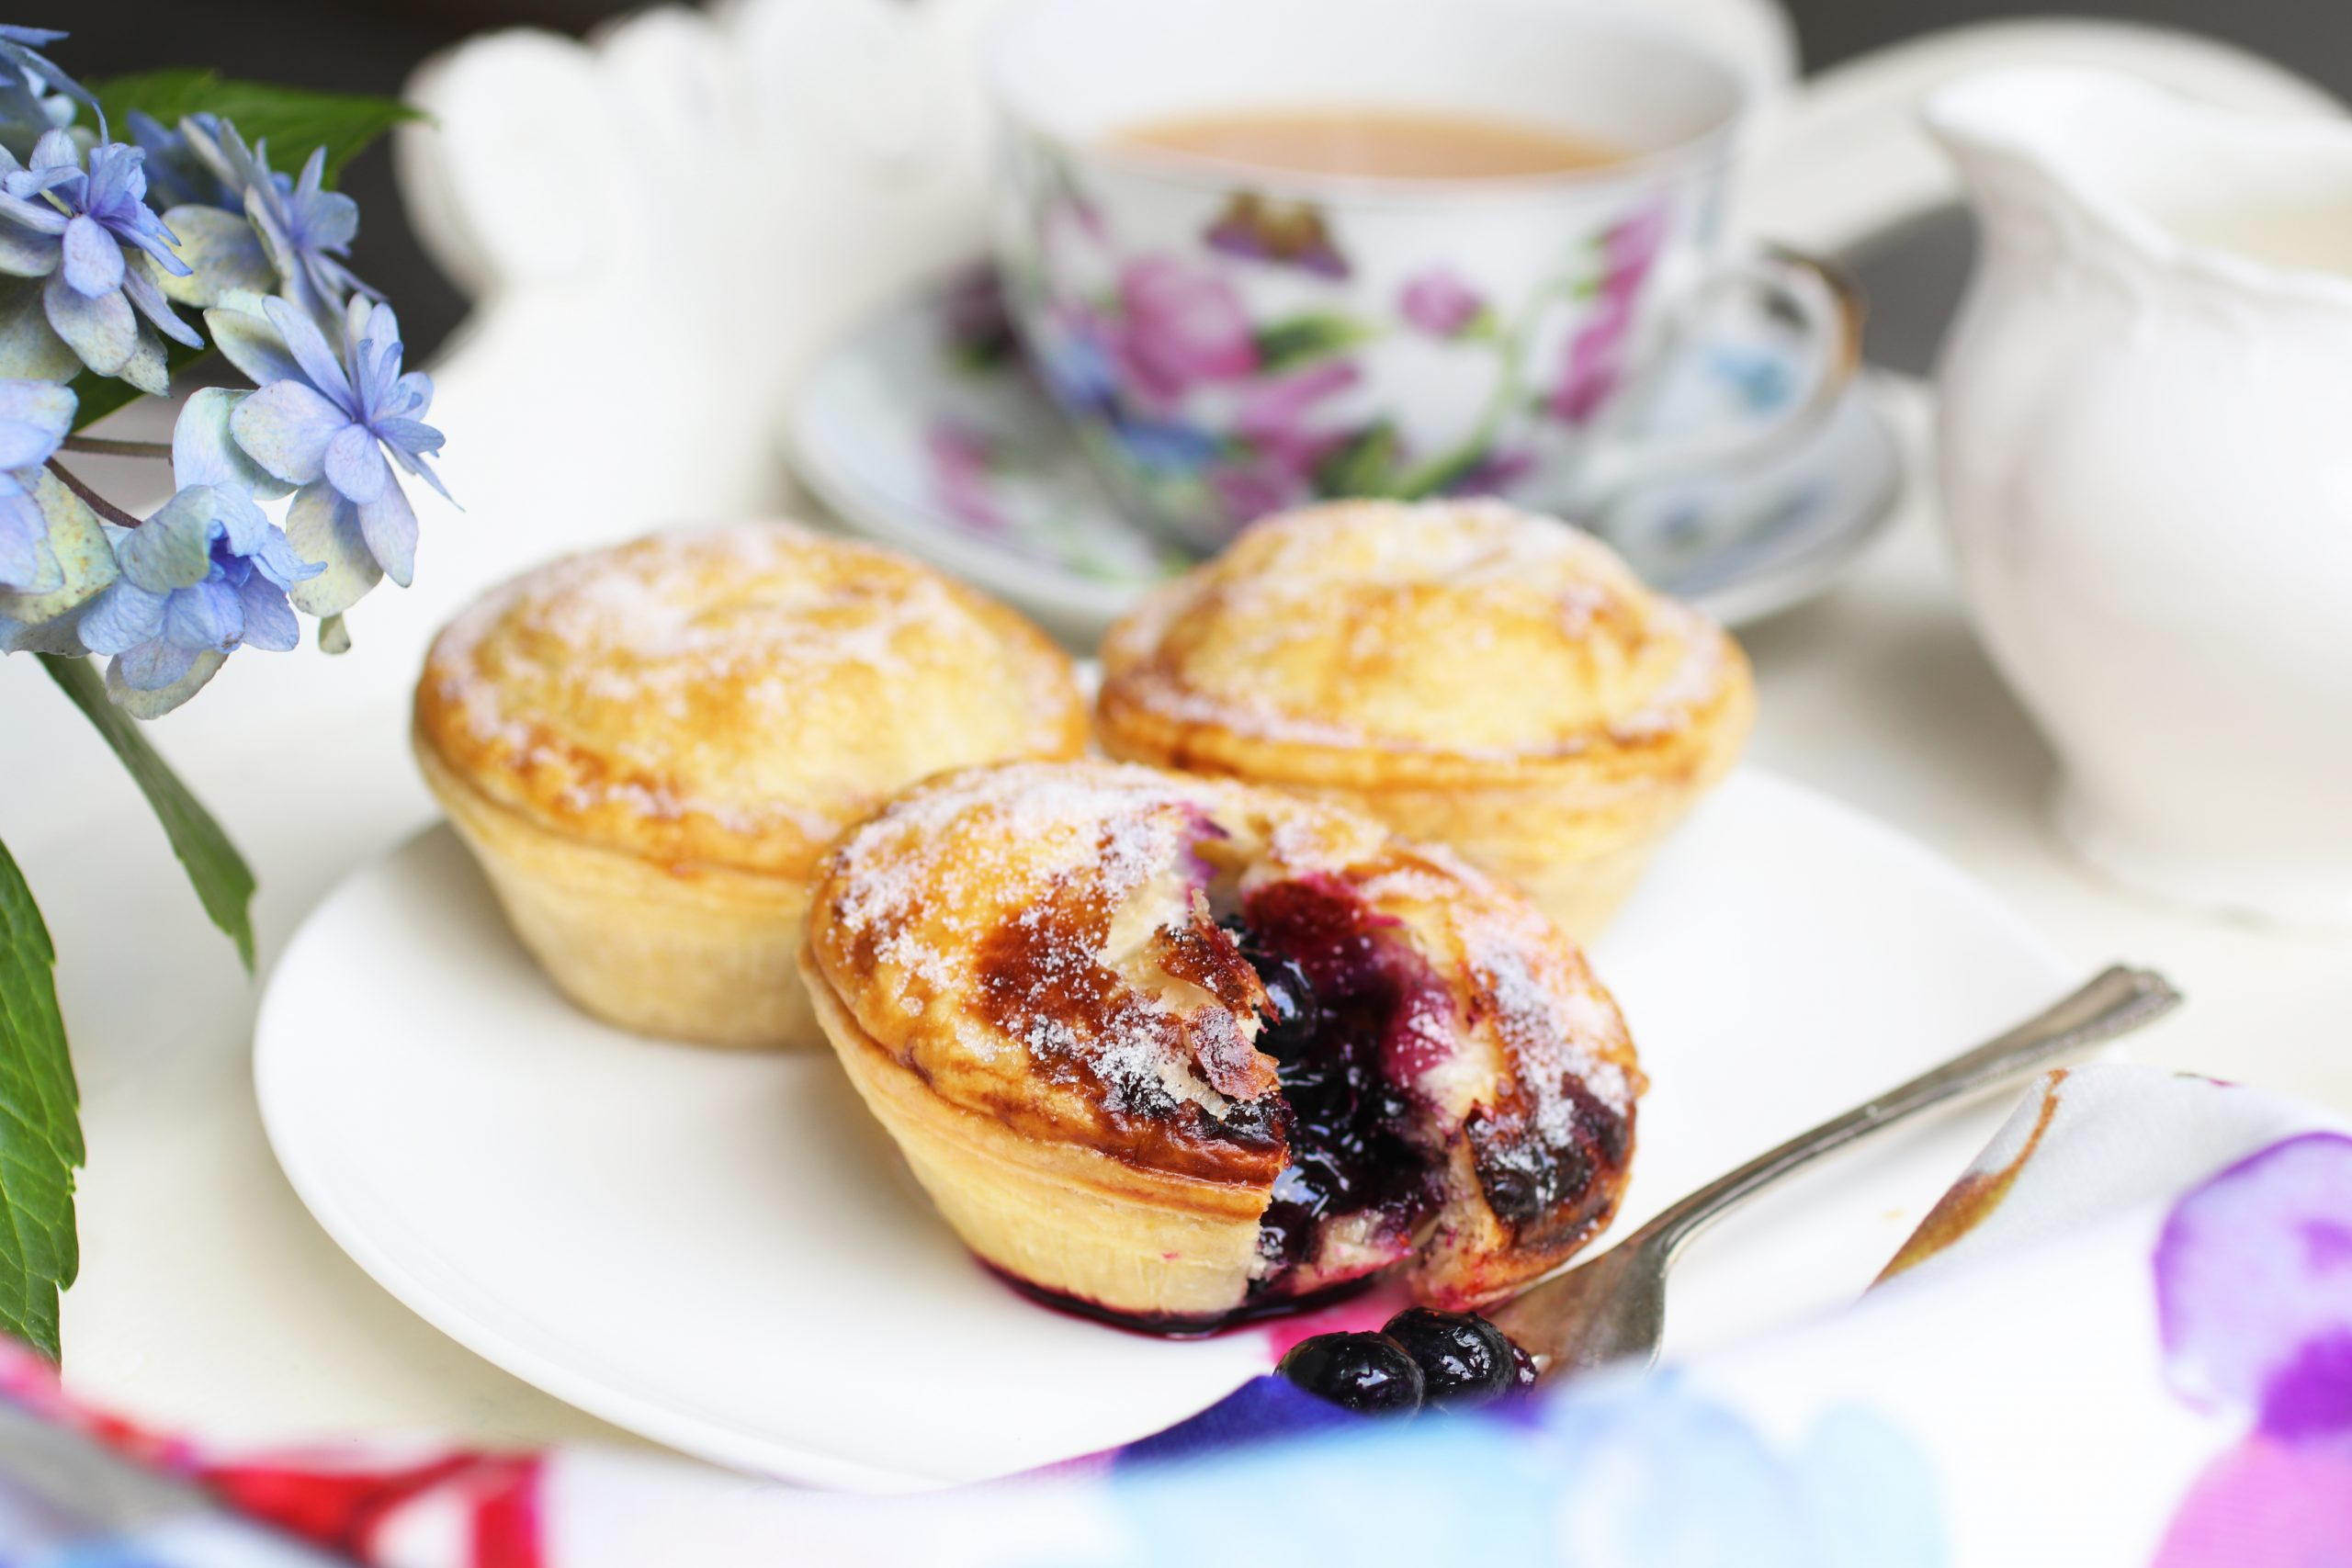 Photo of Panbury's Mini Blueberry Pies and a tea party tray